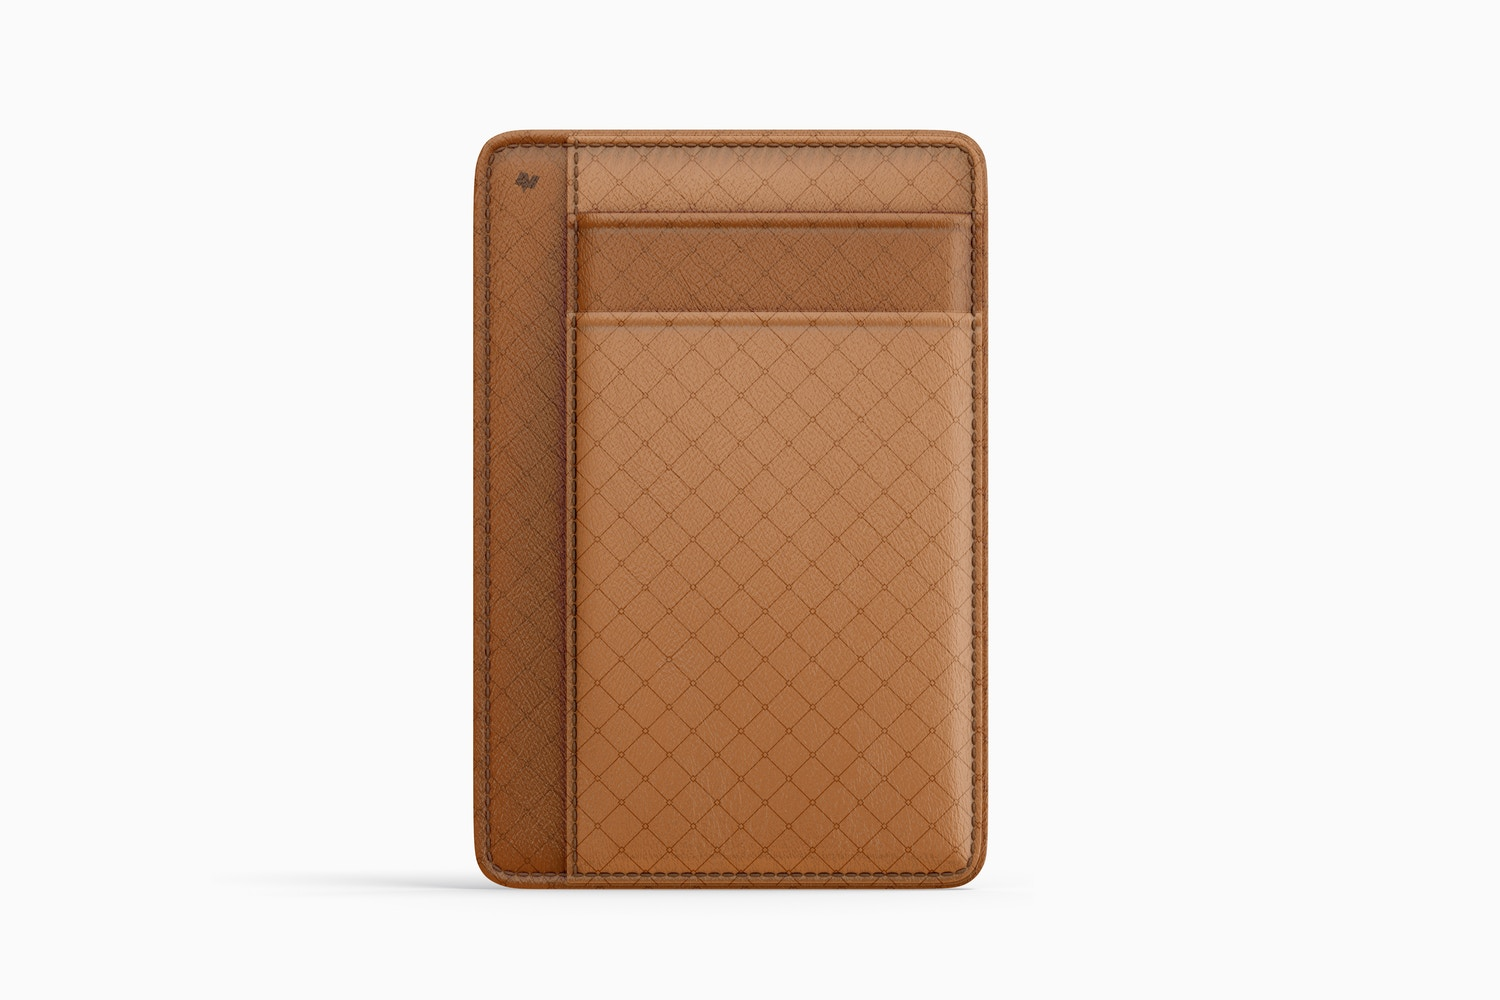 Leather Slim Wallet Mockup, Front View